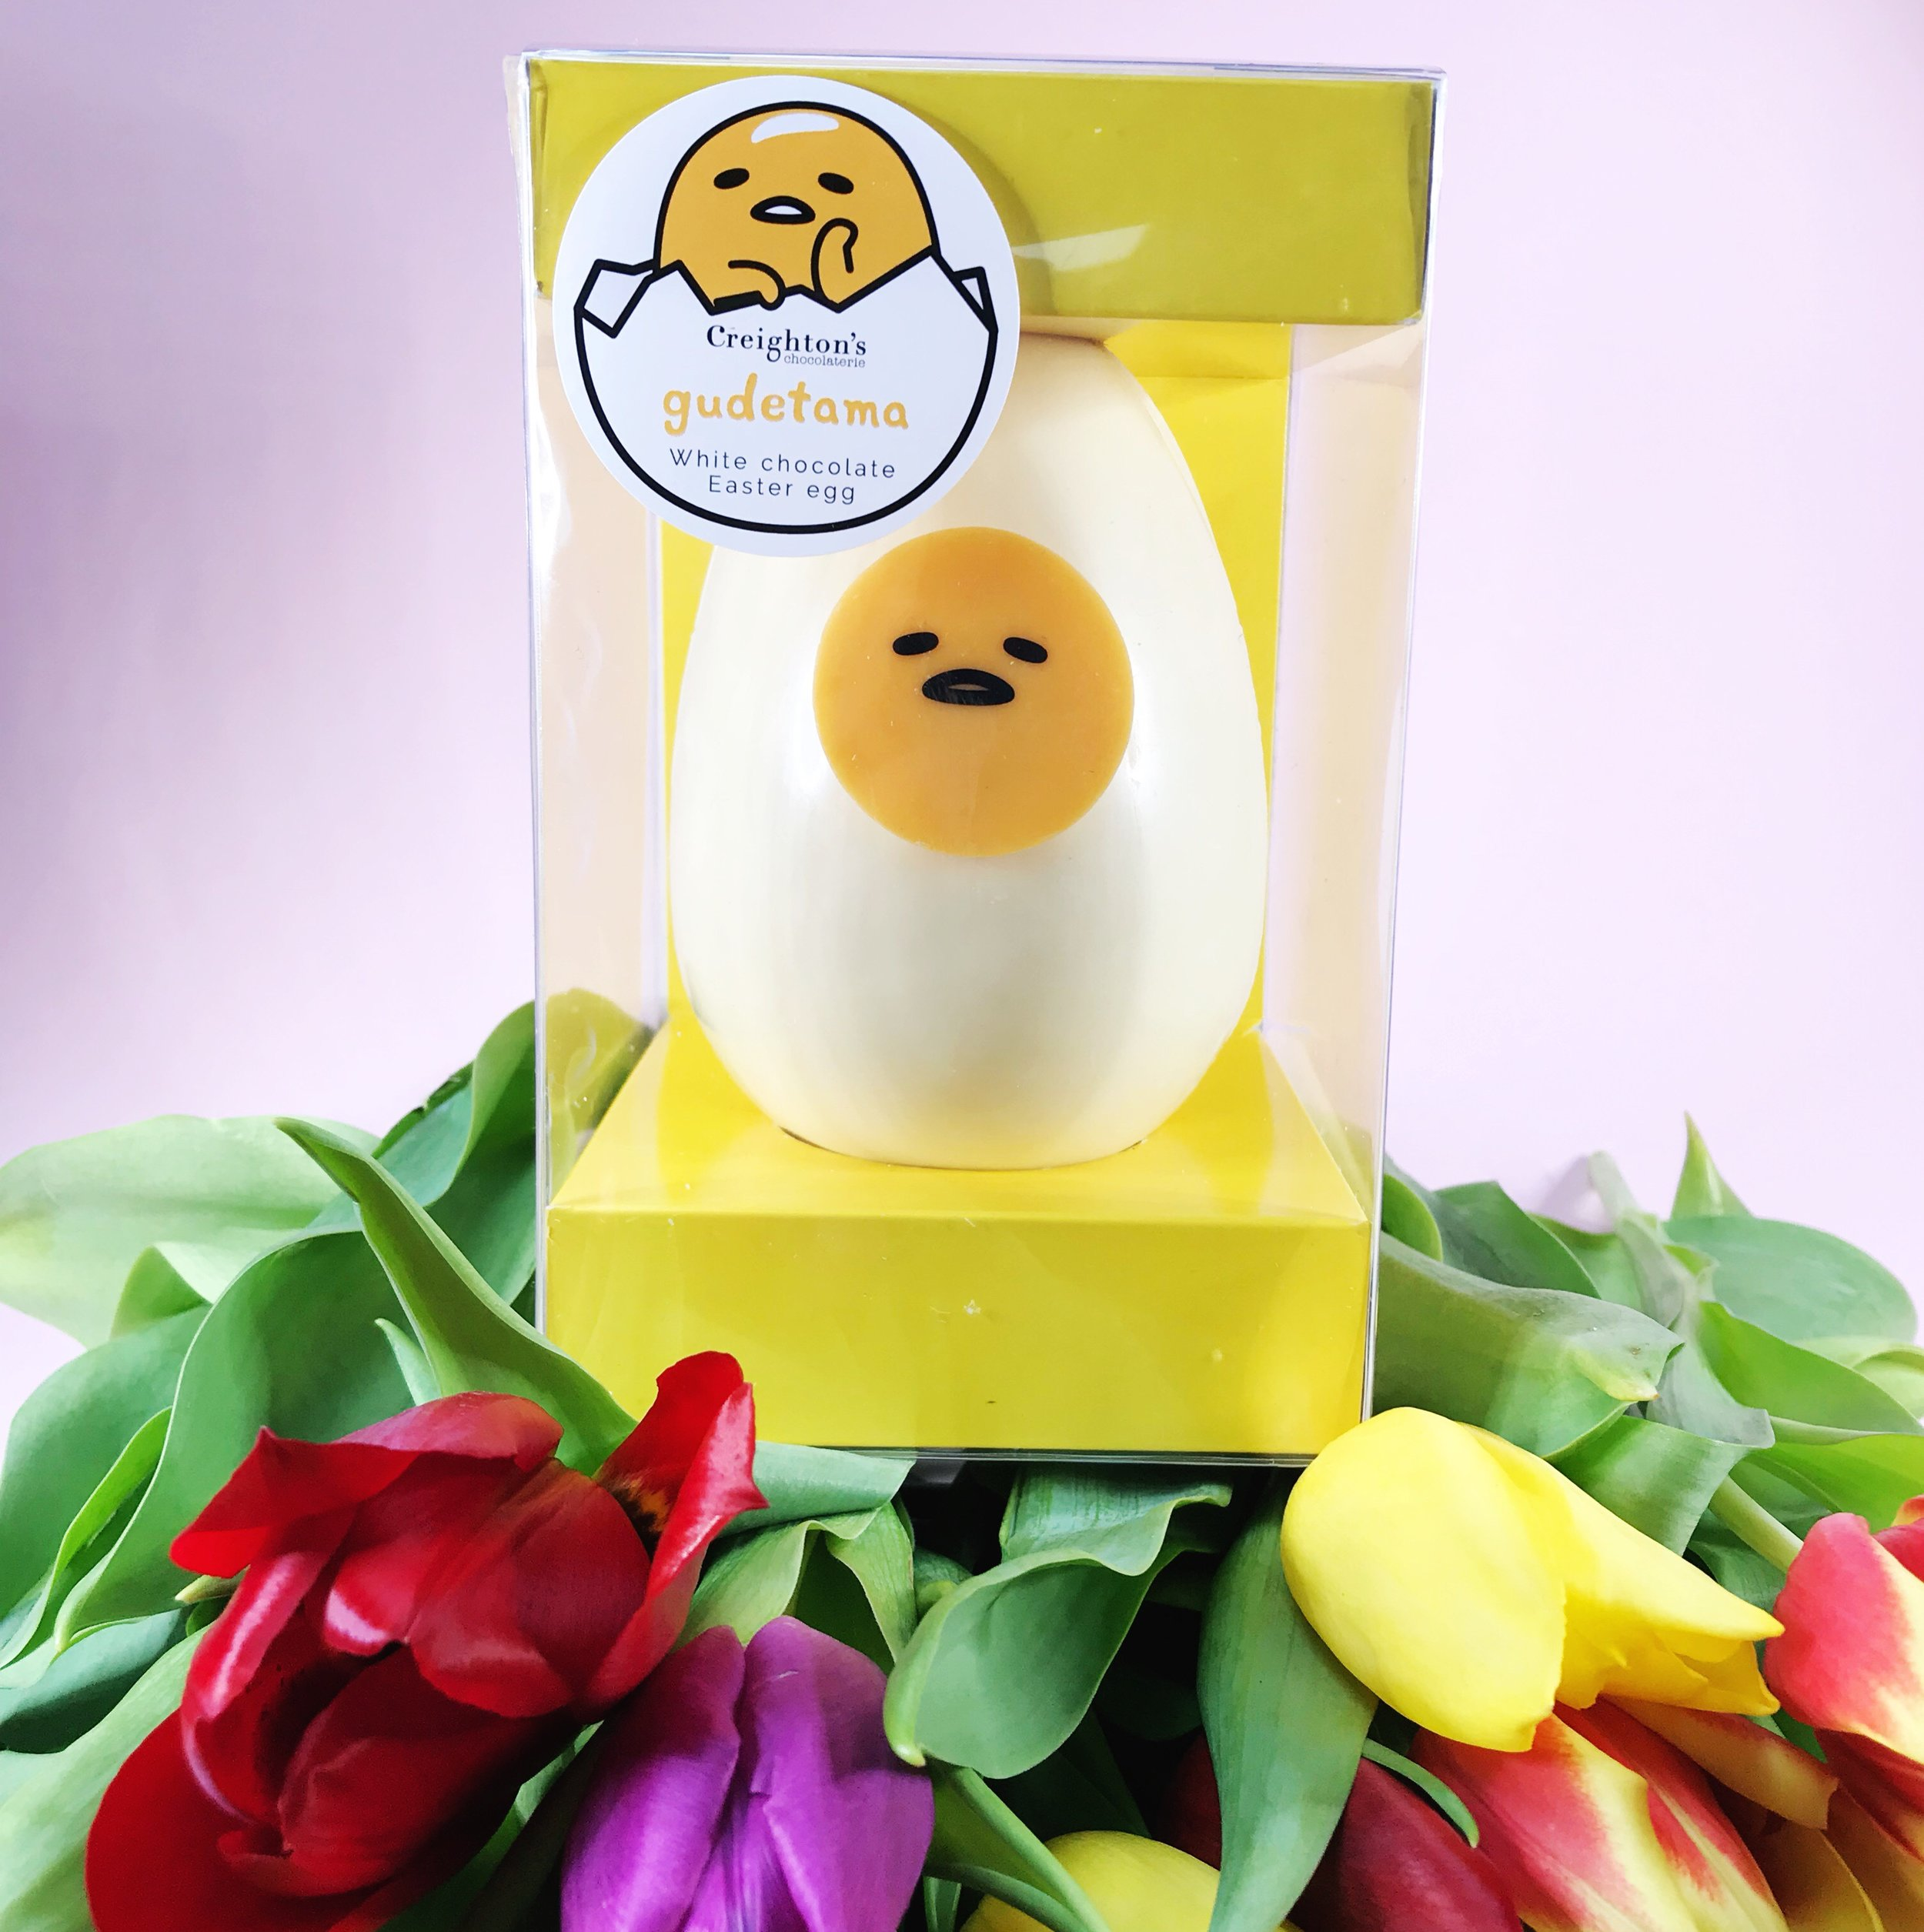 Creighton's x Gudetama the one and only Easter Egg